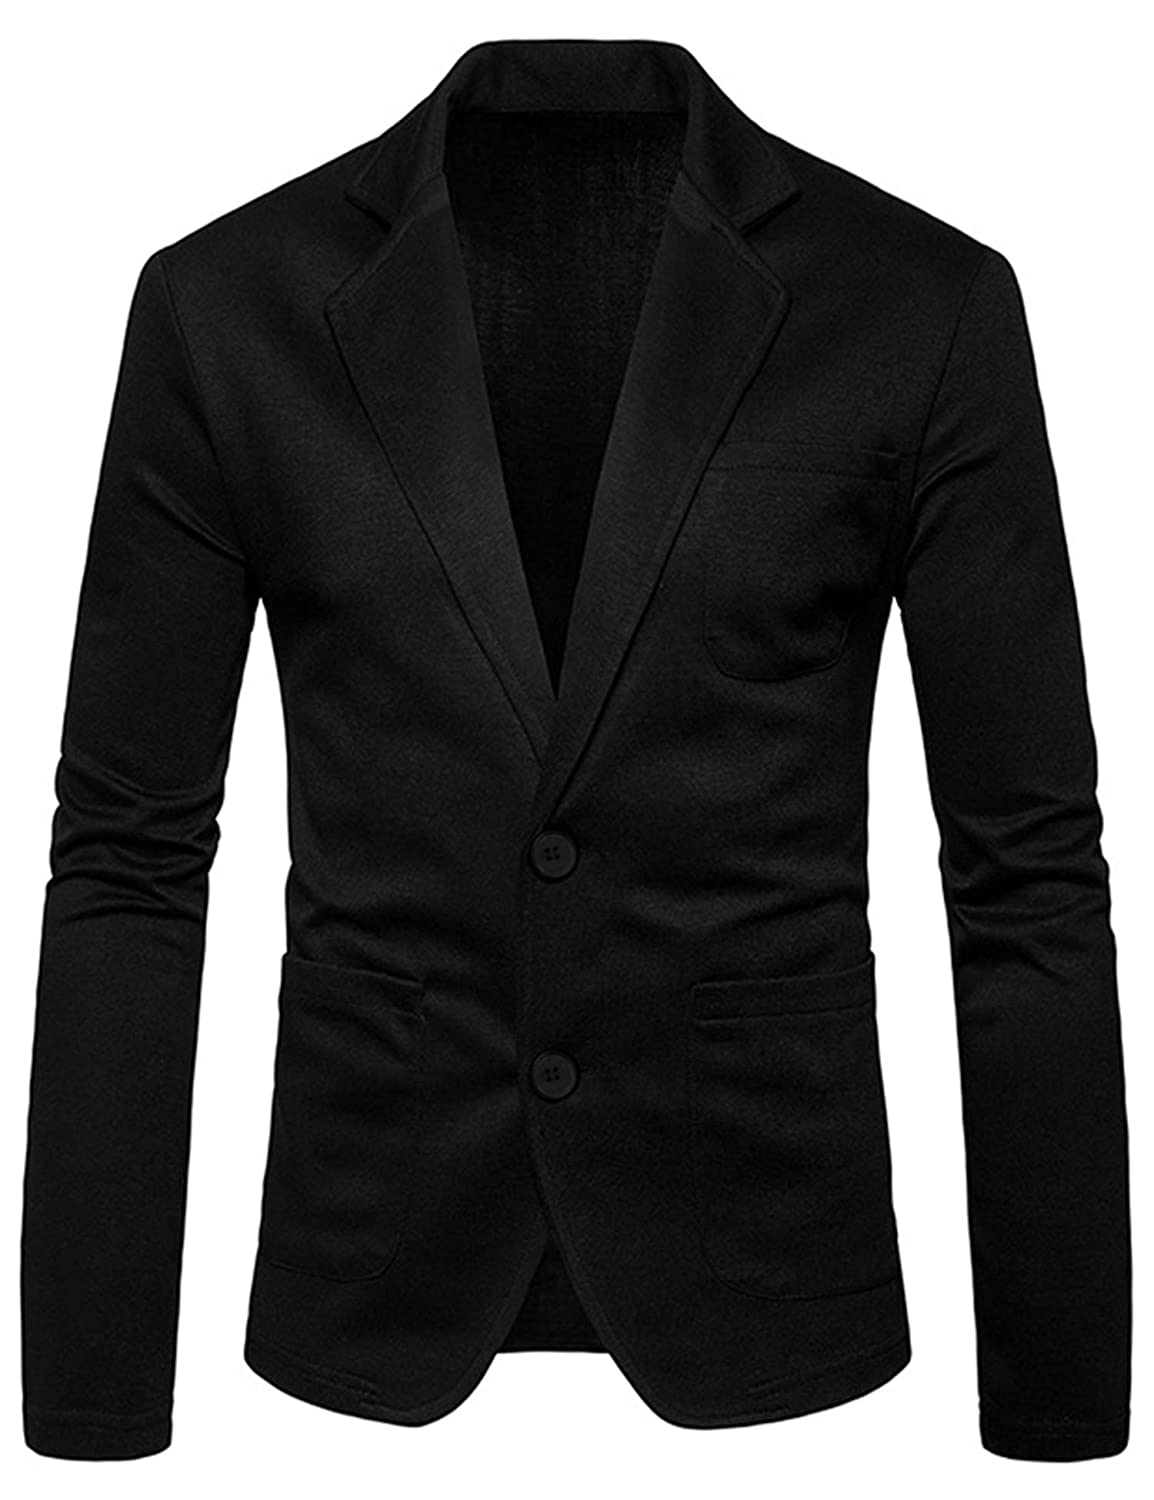 4910092a836e60 COOFANDY Mens Cotton Casual Two Button Lapel Blazer Jacket Lightweight  Sport Coat at Amazon Men's Clothing store: